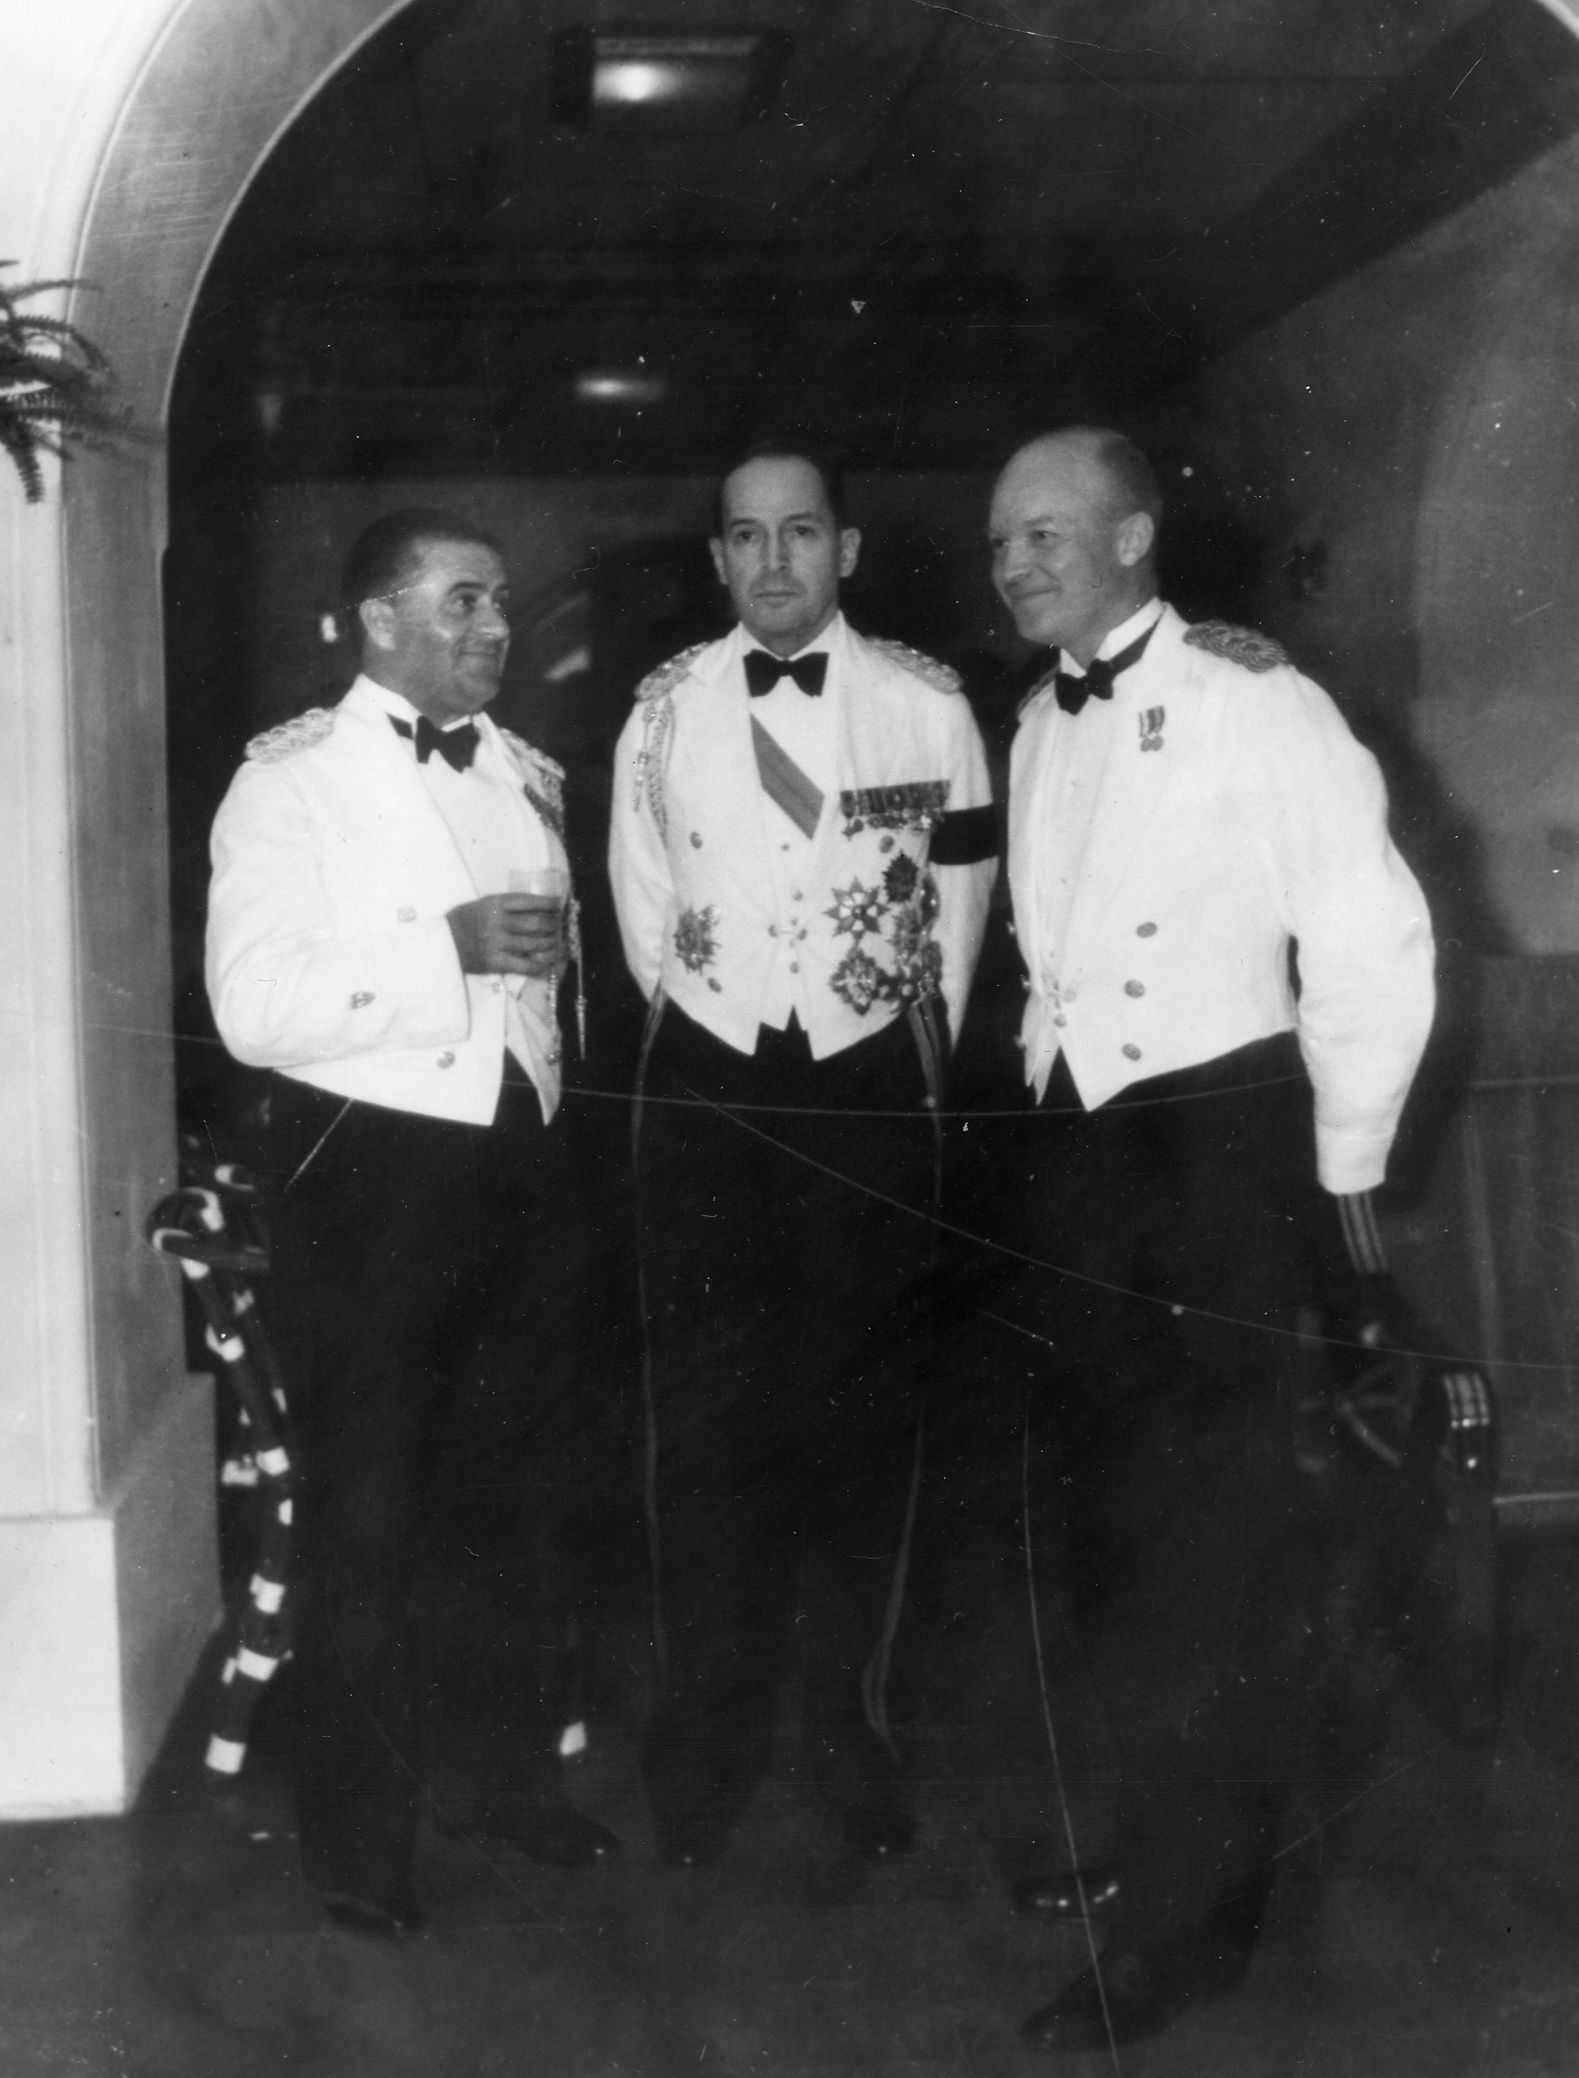 Black and white photo of Eisenhower, MacArthur, and Davis in formal dress.